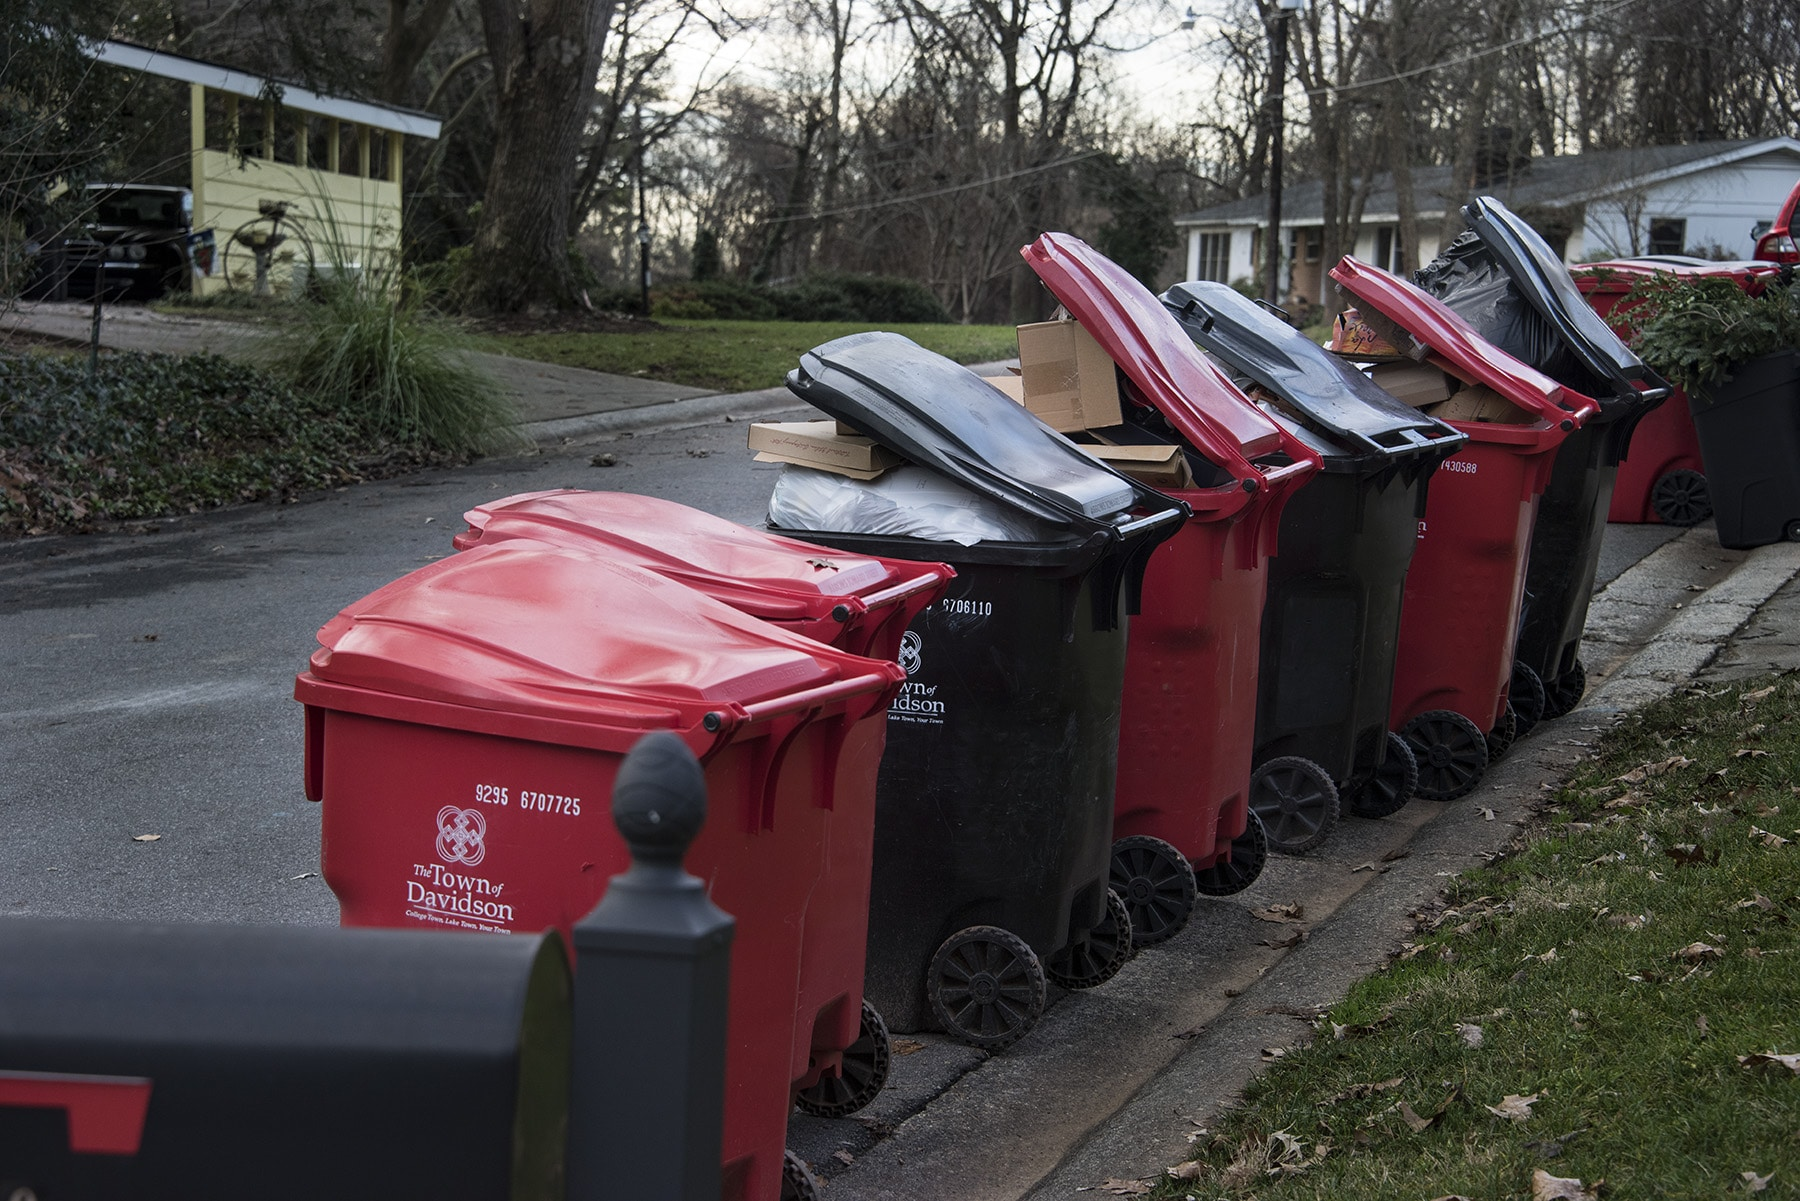 Christmas Past — An overflowing bounty! The holidays left behind overflowing rubbish bins full of cardboard boxes and wrapping paper and all around town for sanitation workers to cart away.